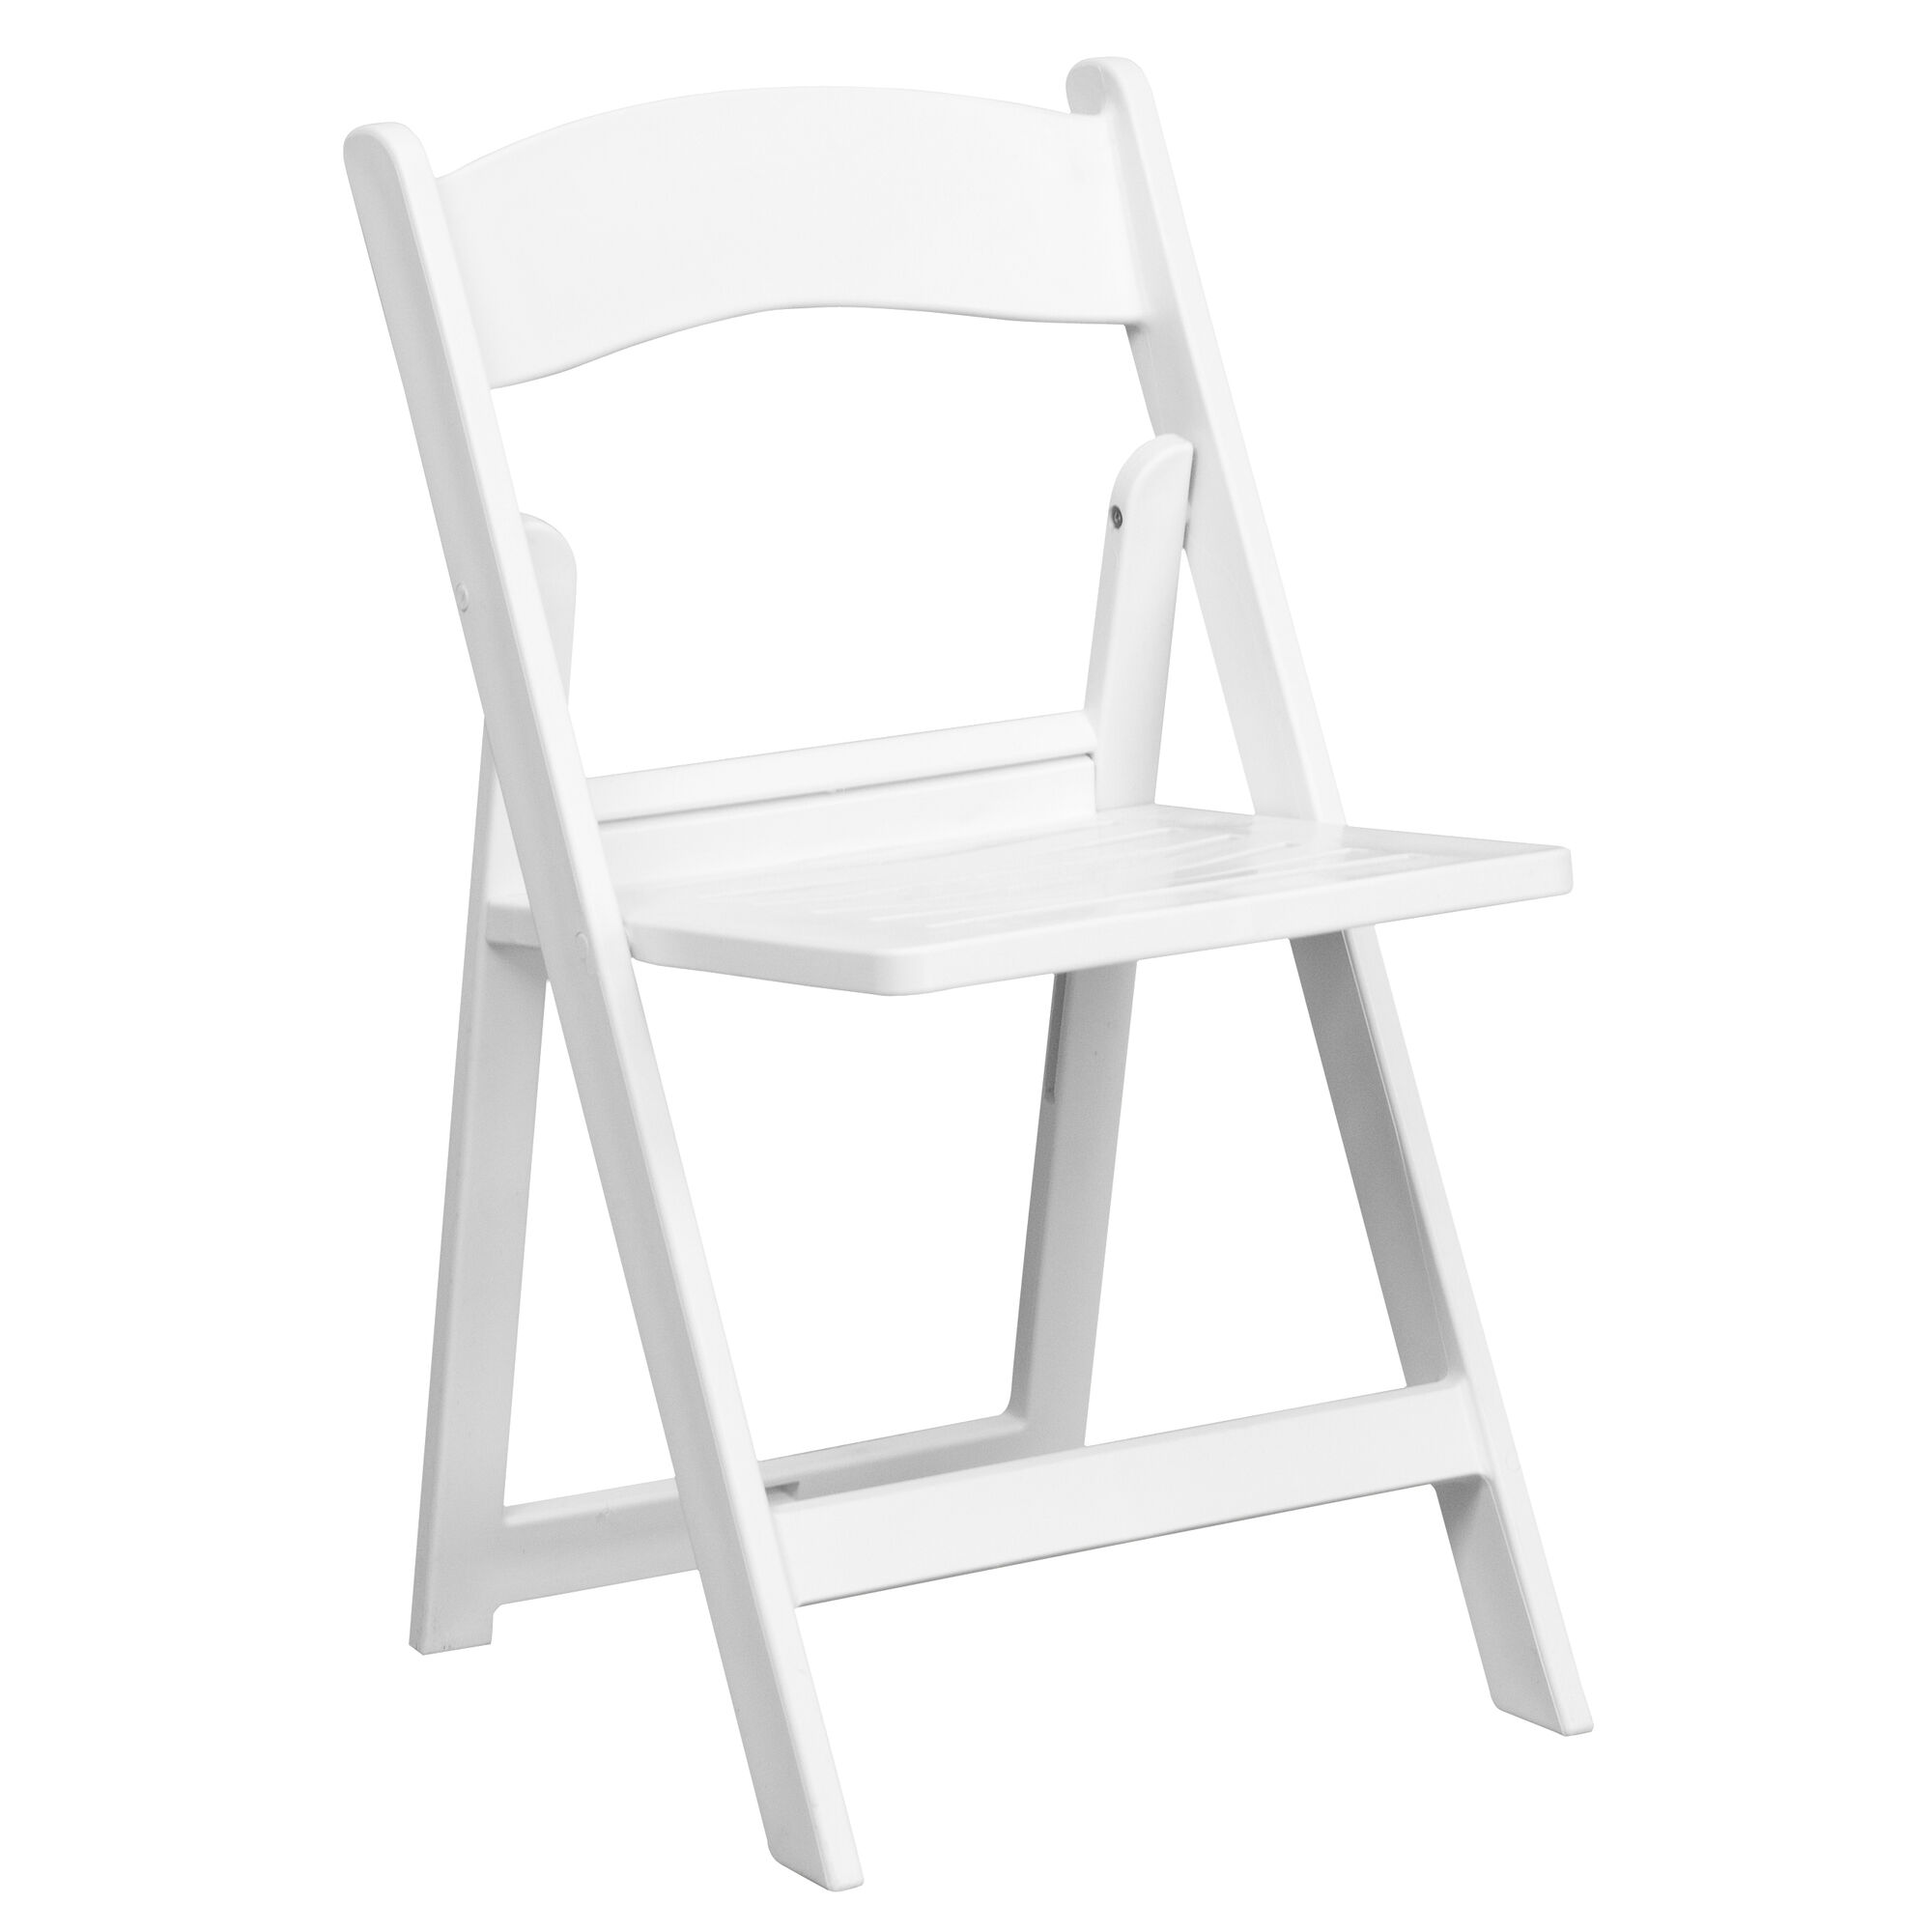 Remarkable Hercules Series 1000 Lb Capacity White Resin Folding Chair With Slatted Seat Creativecarmelina Interior Chair Design Creativecarmelinacom